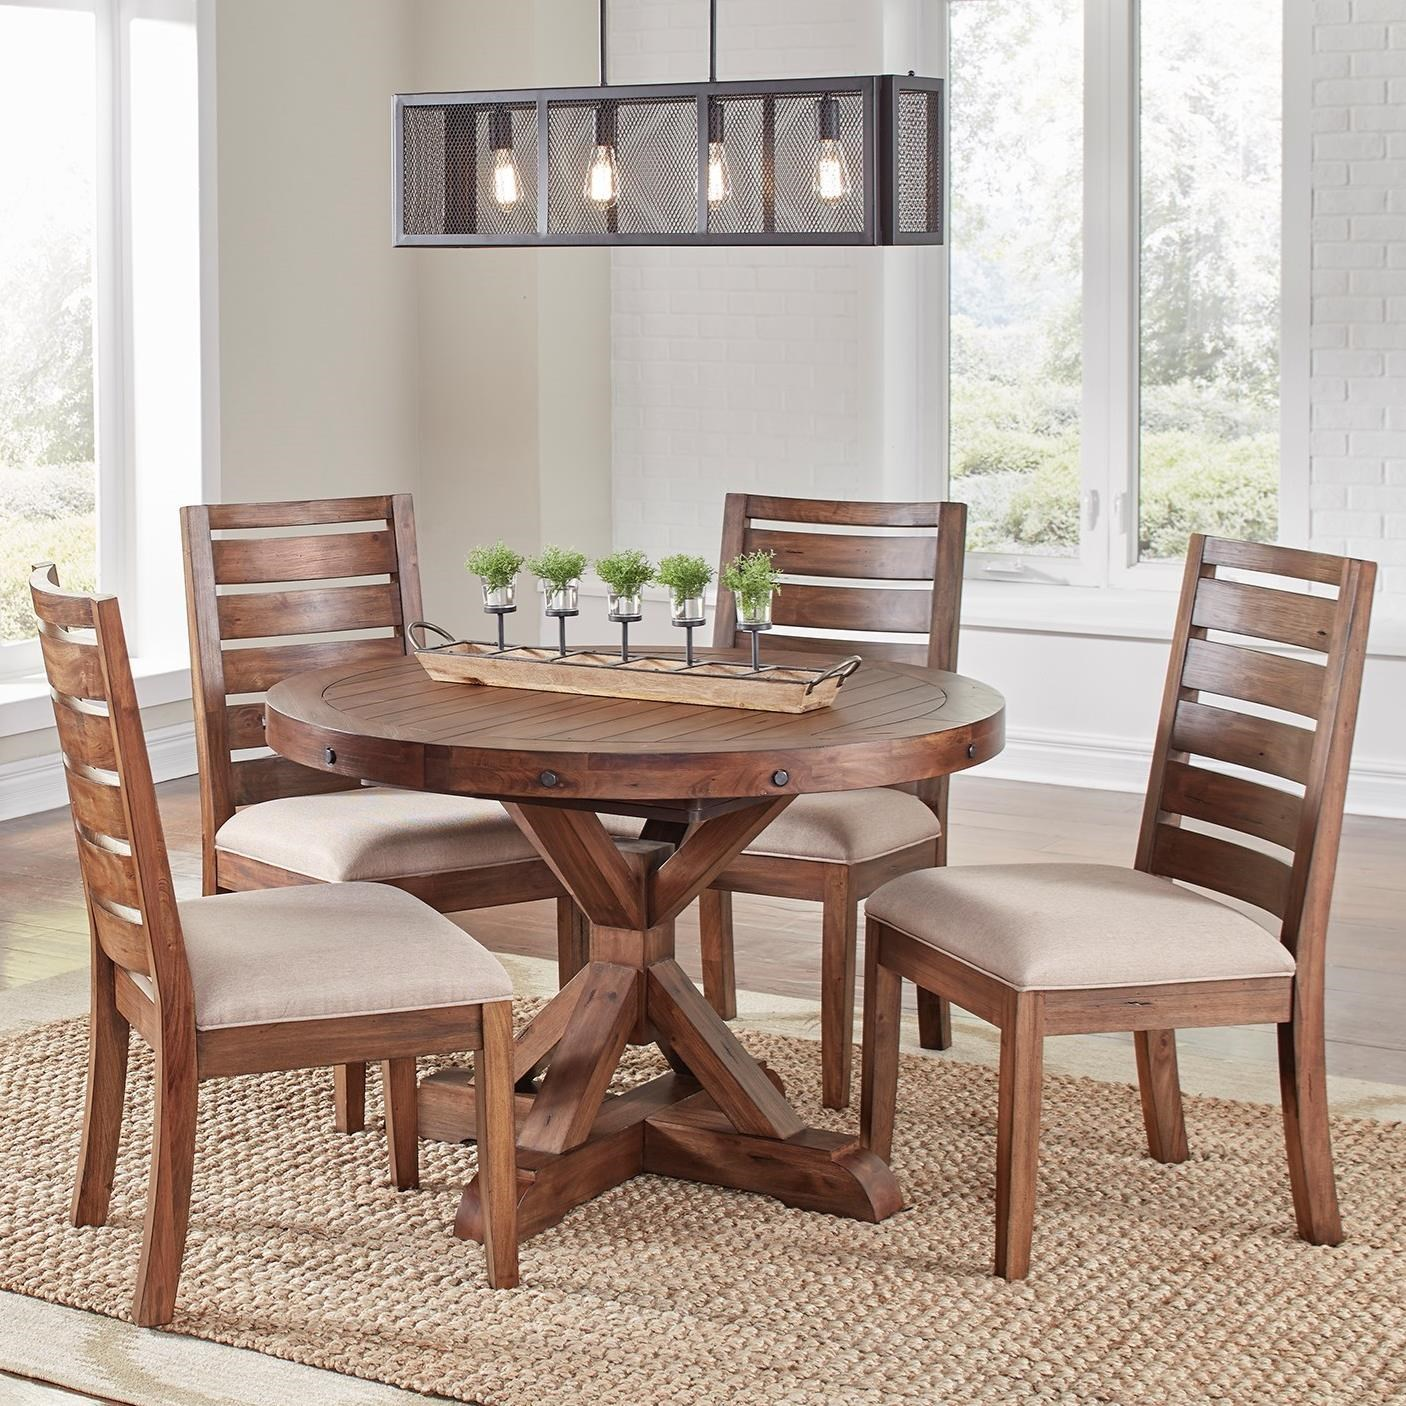 Anacortes 5 Piece Dining Set by AAmerica at Rife's Home Furniture